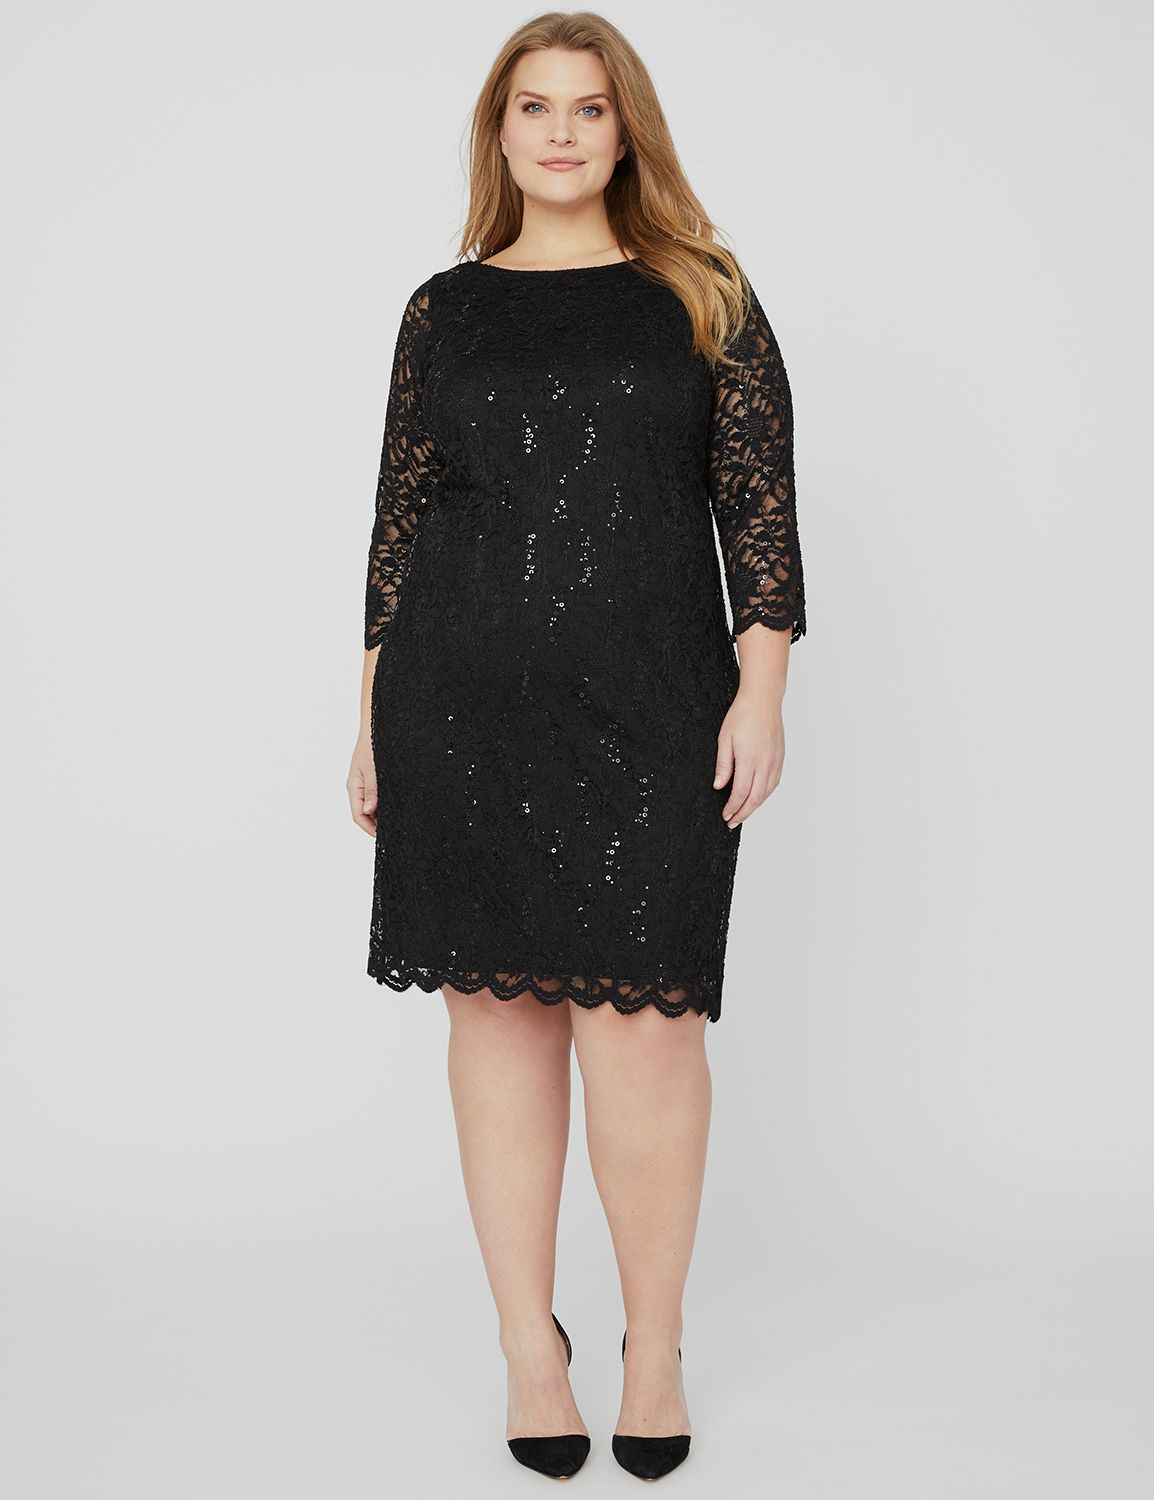 Sequin Lace Shift Dress 1093614 Lace Shift - #88922 MP-300107347